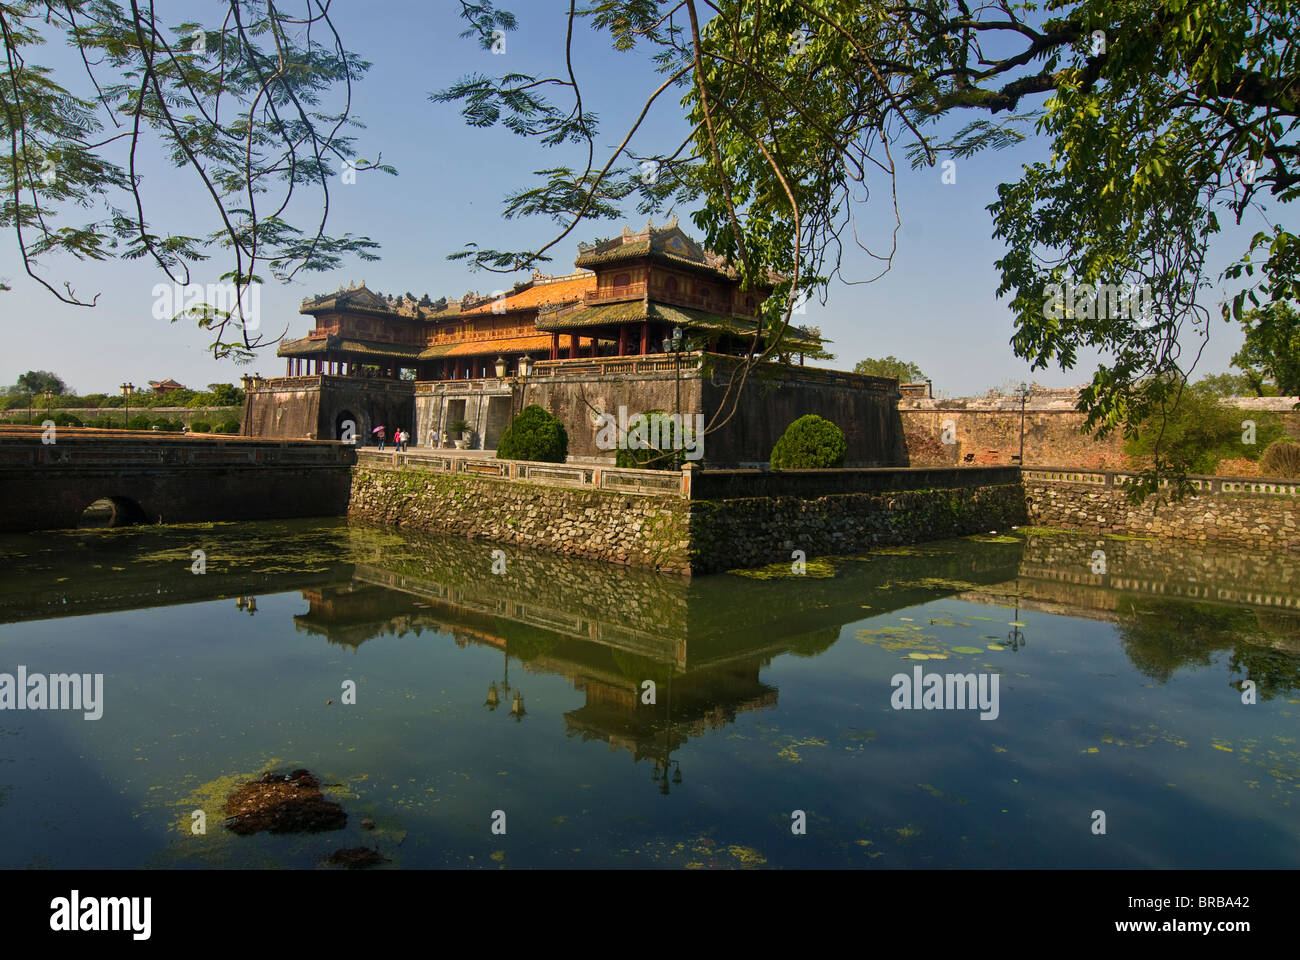 Ngo Mon gate, entrance to the Imperial Enclosure, Hue, Vietnam, Indochina, Southeast Asia, Asia - Stock Image